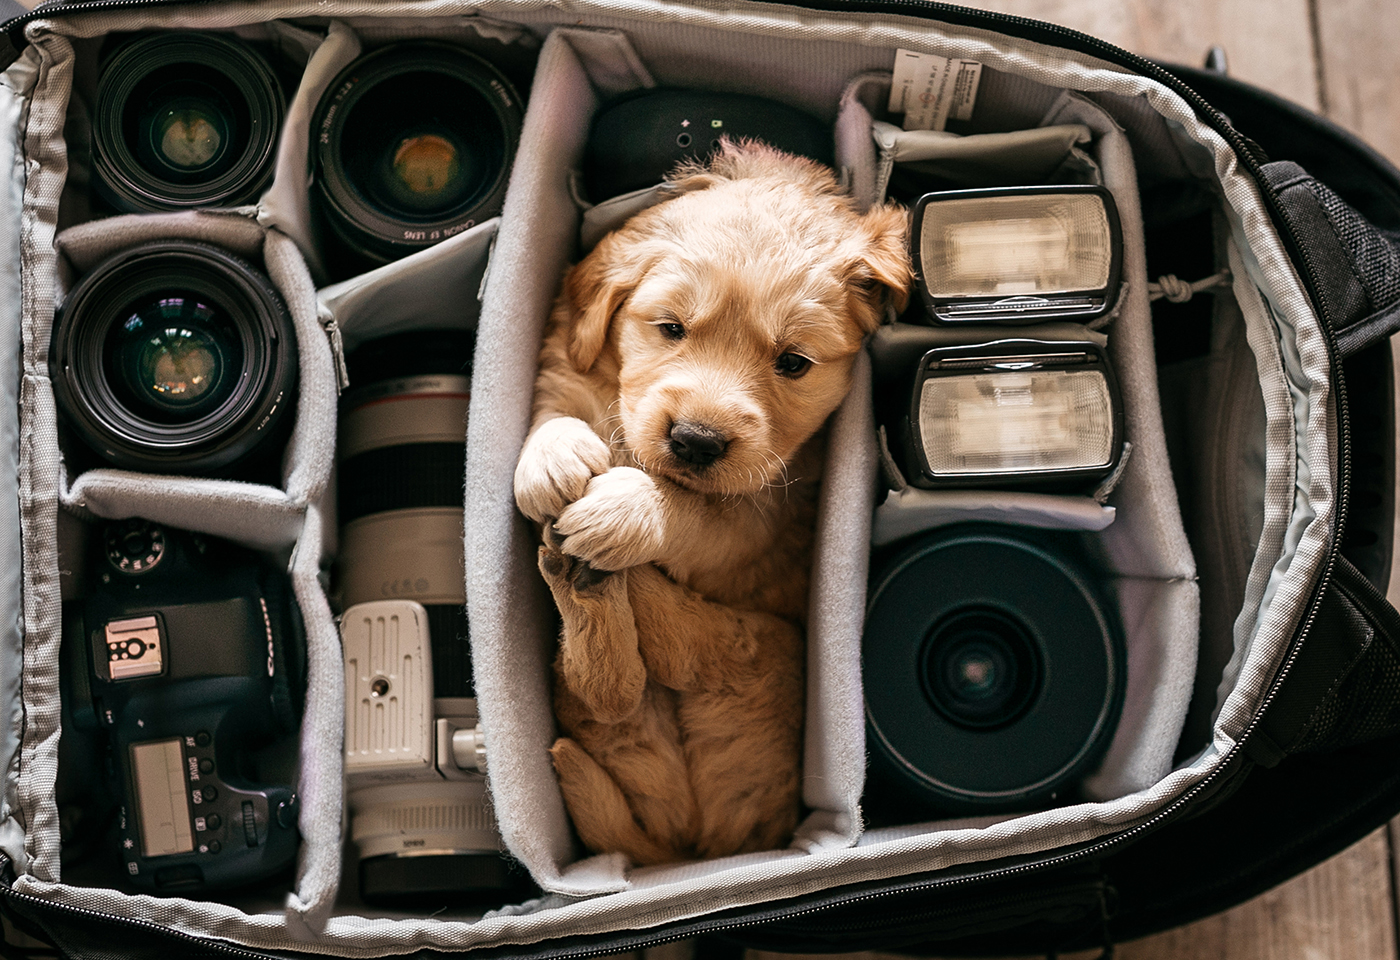 Portrait image of dog in camera bag